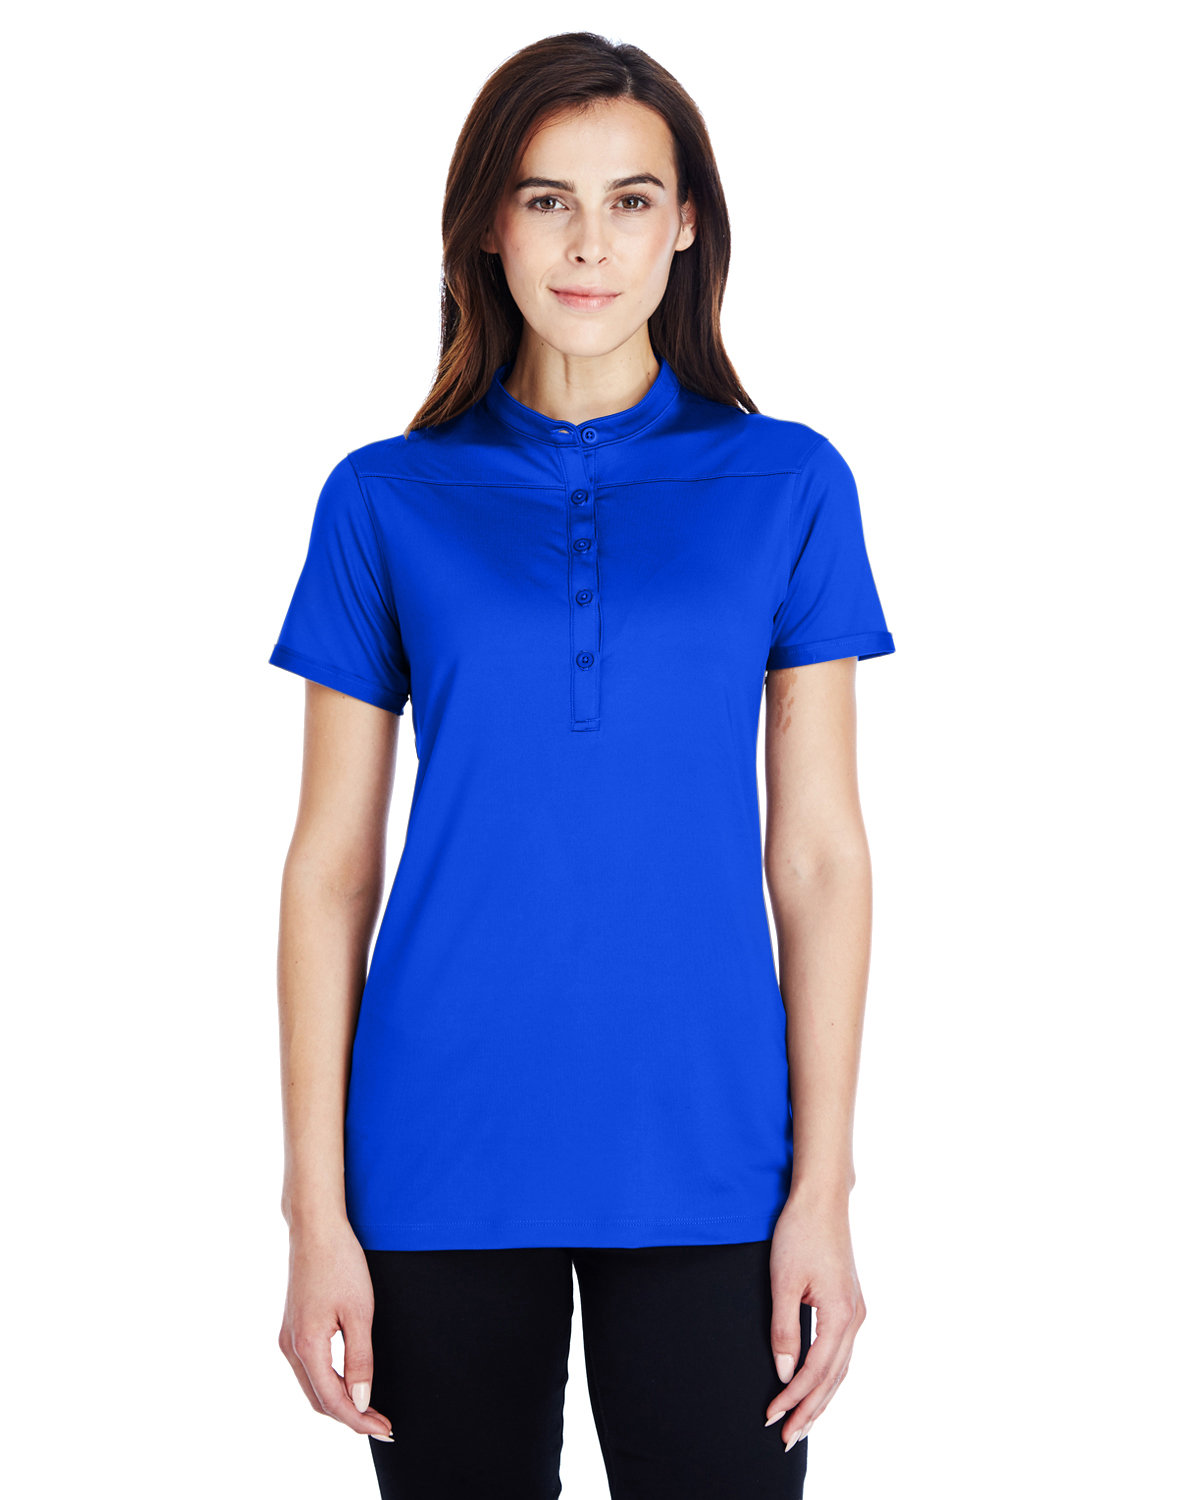 Under Armour SuperSale Ladies' Corporate Performance Polo 2.0 ROYAL/ WHITE _400